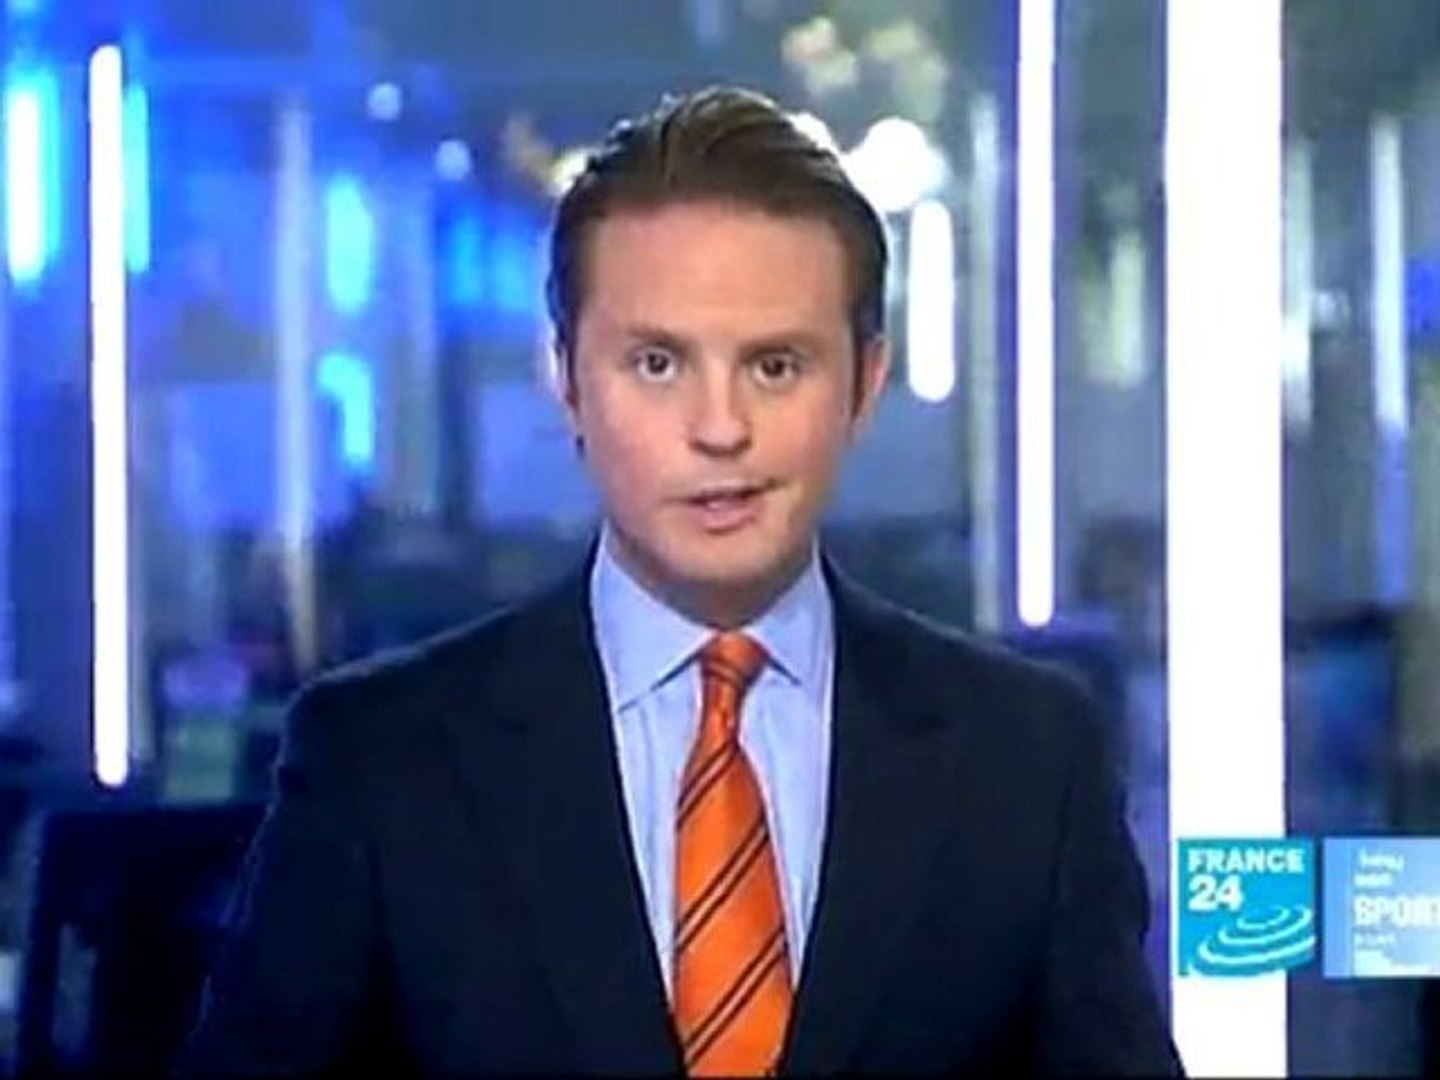 06:45AM FRANCE 24's international news flash